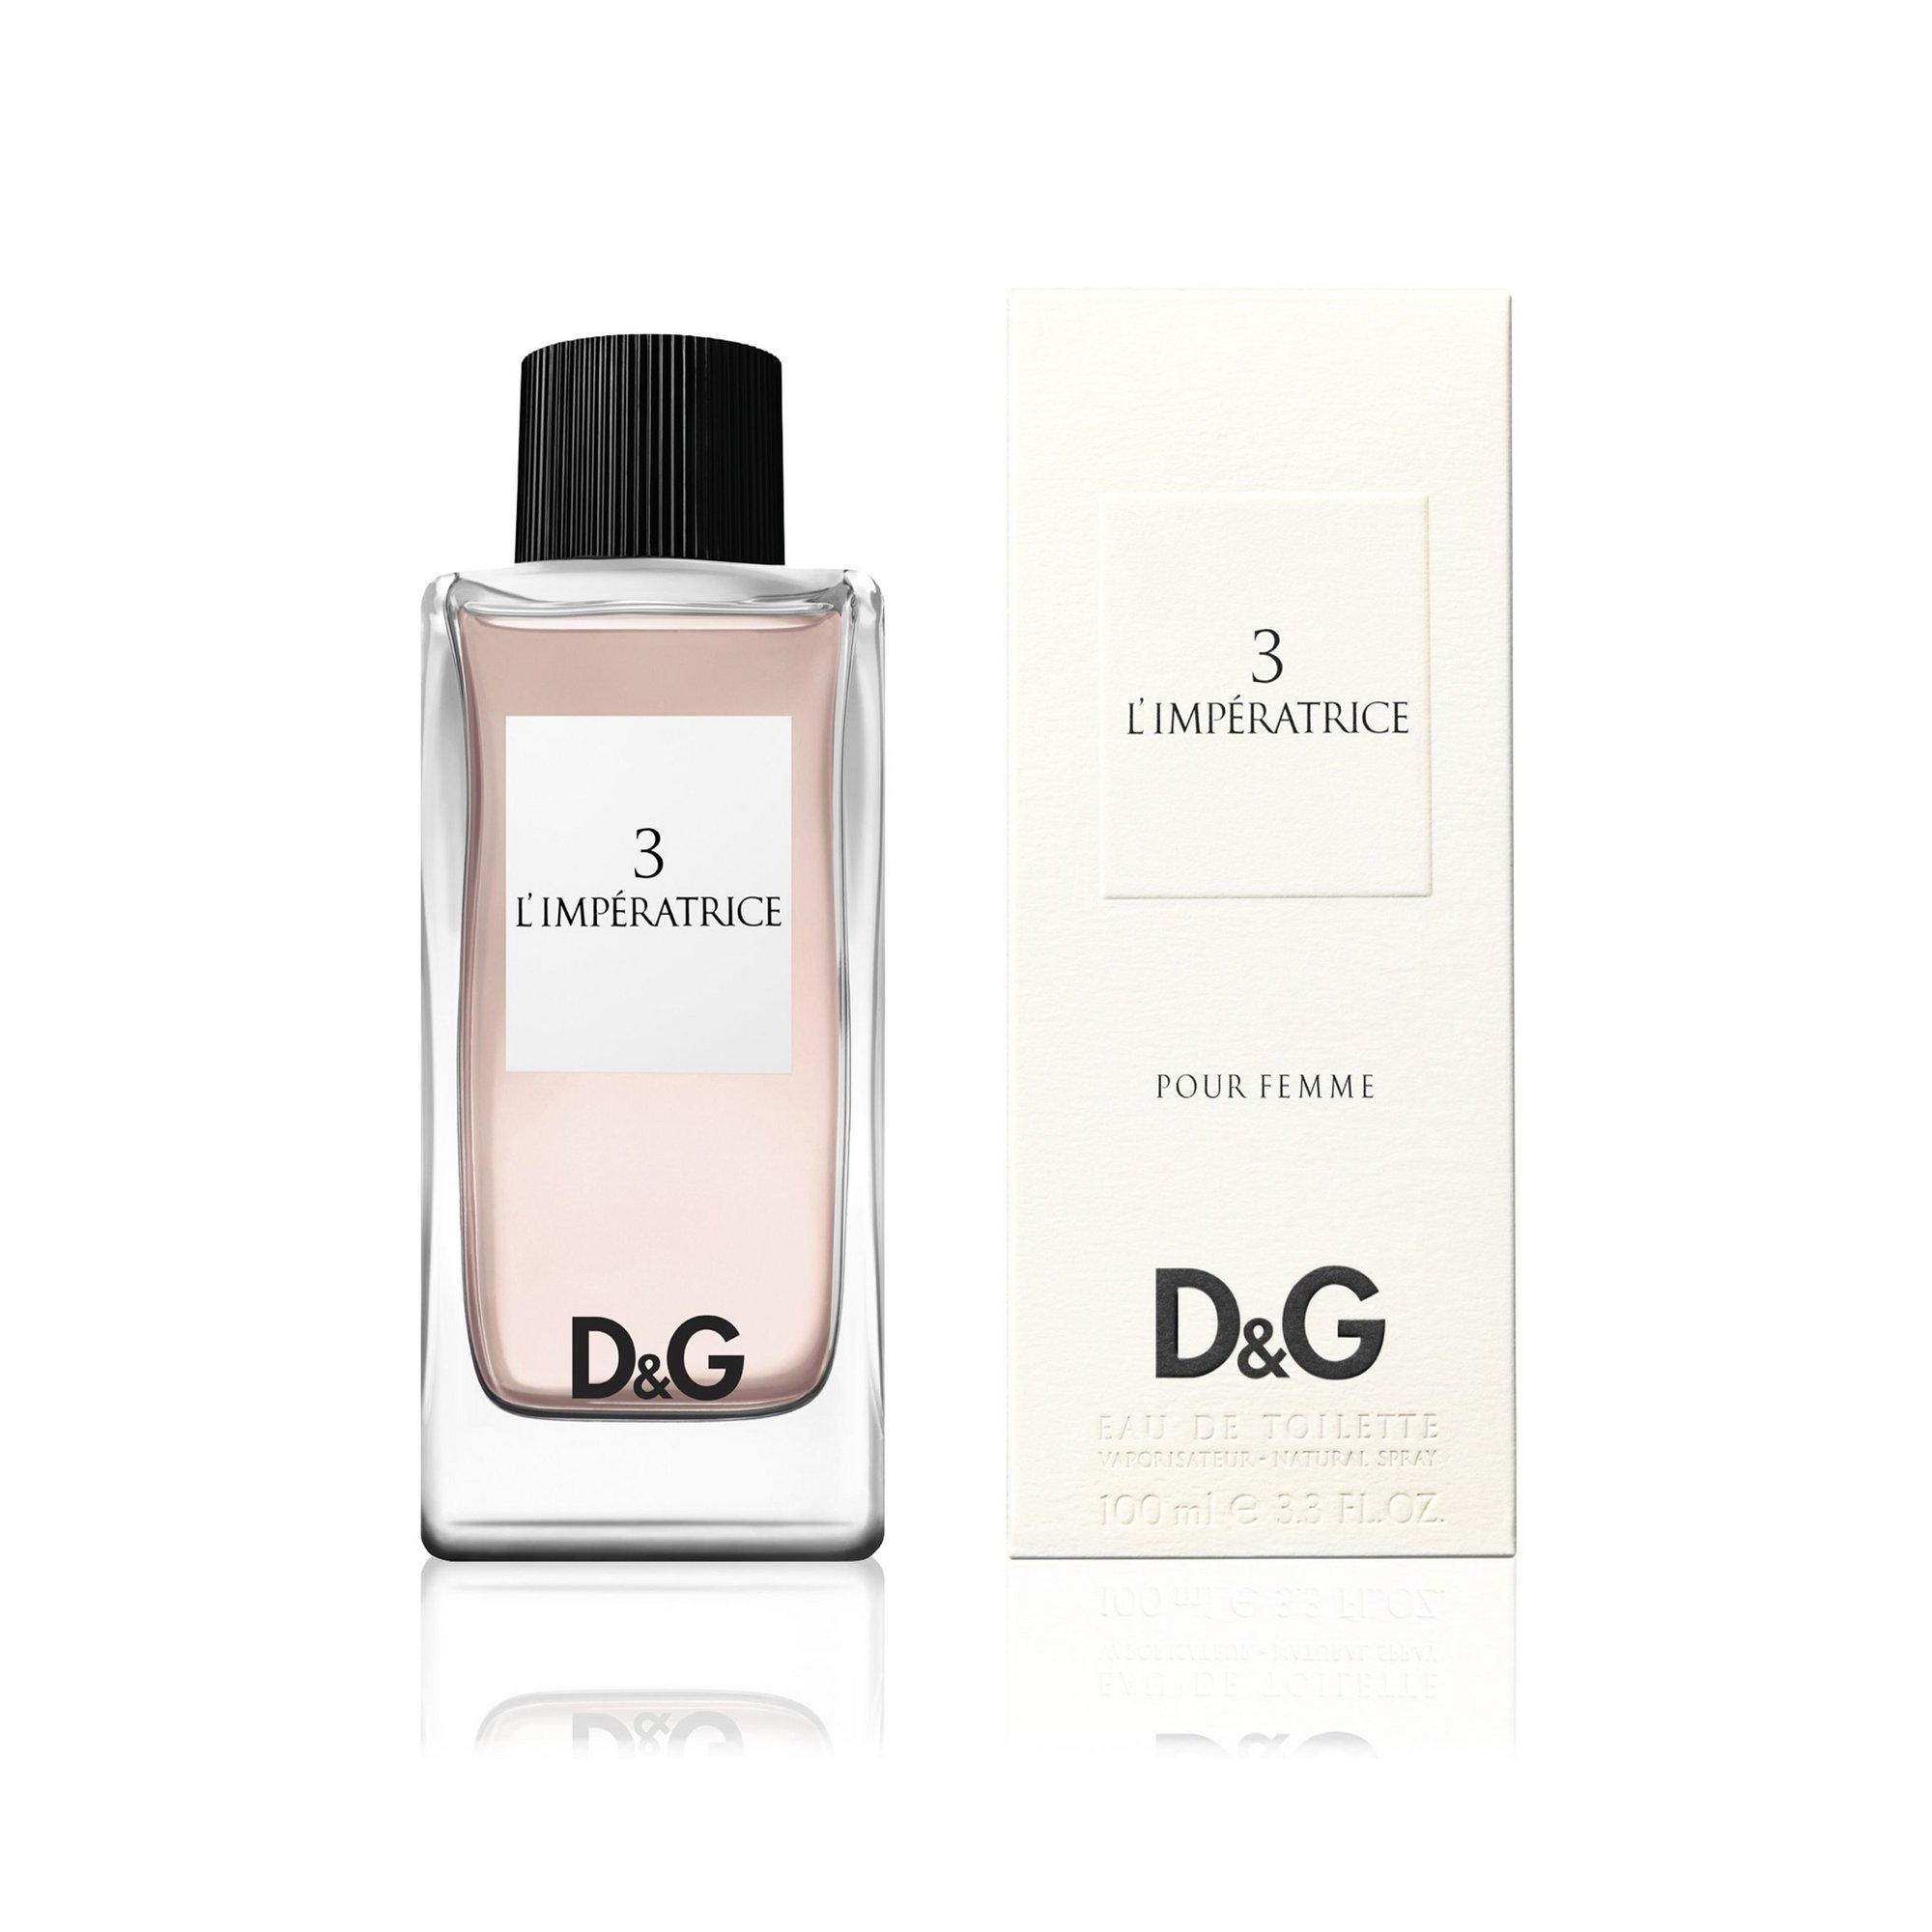 Image of Dolce and Gabbana 3 L Imperatrice 100ml EDT